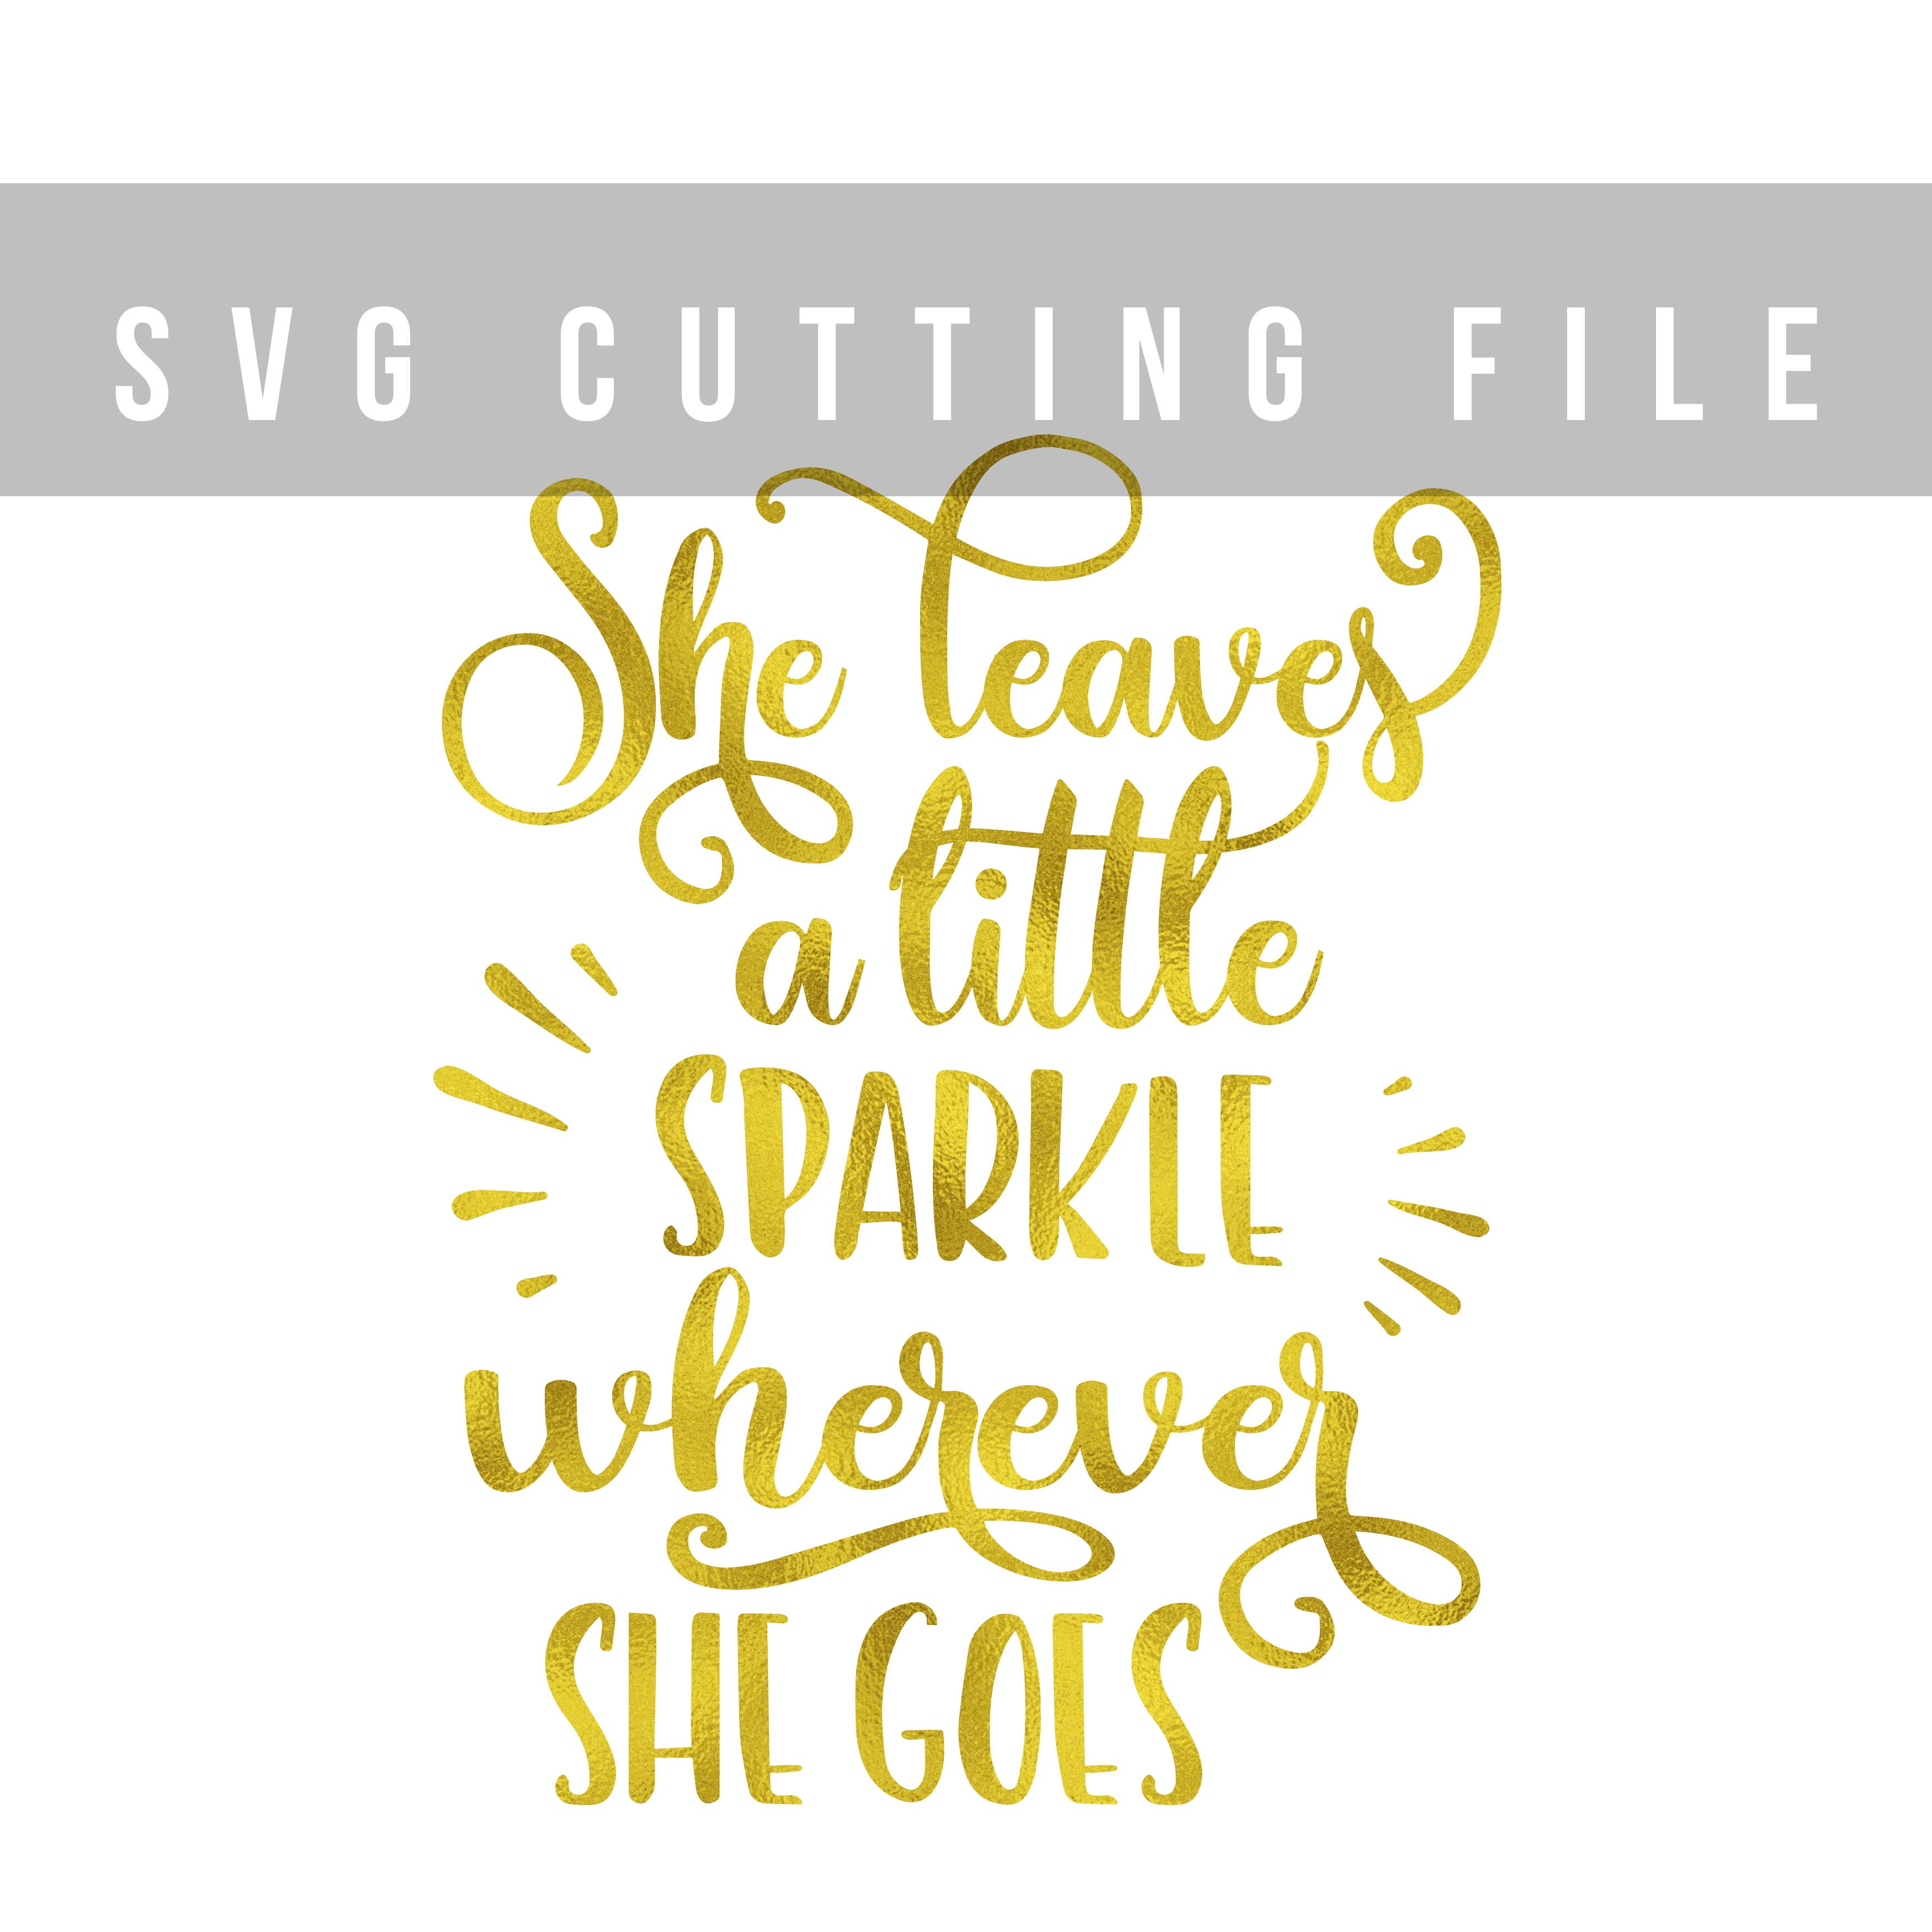 She leaves a little sparkle SVG PNG EPS DXF, Girl svg file for Cricut example image 2